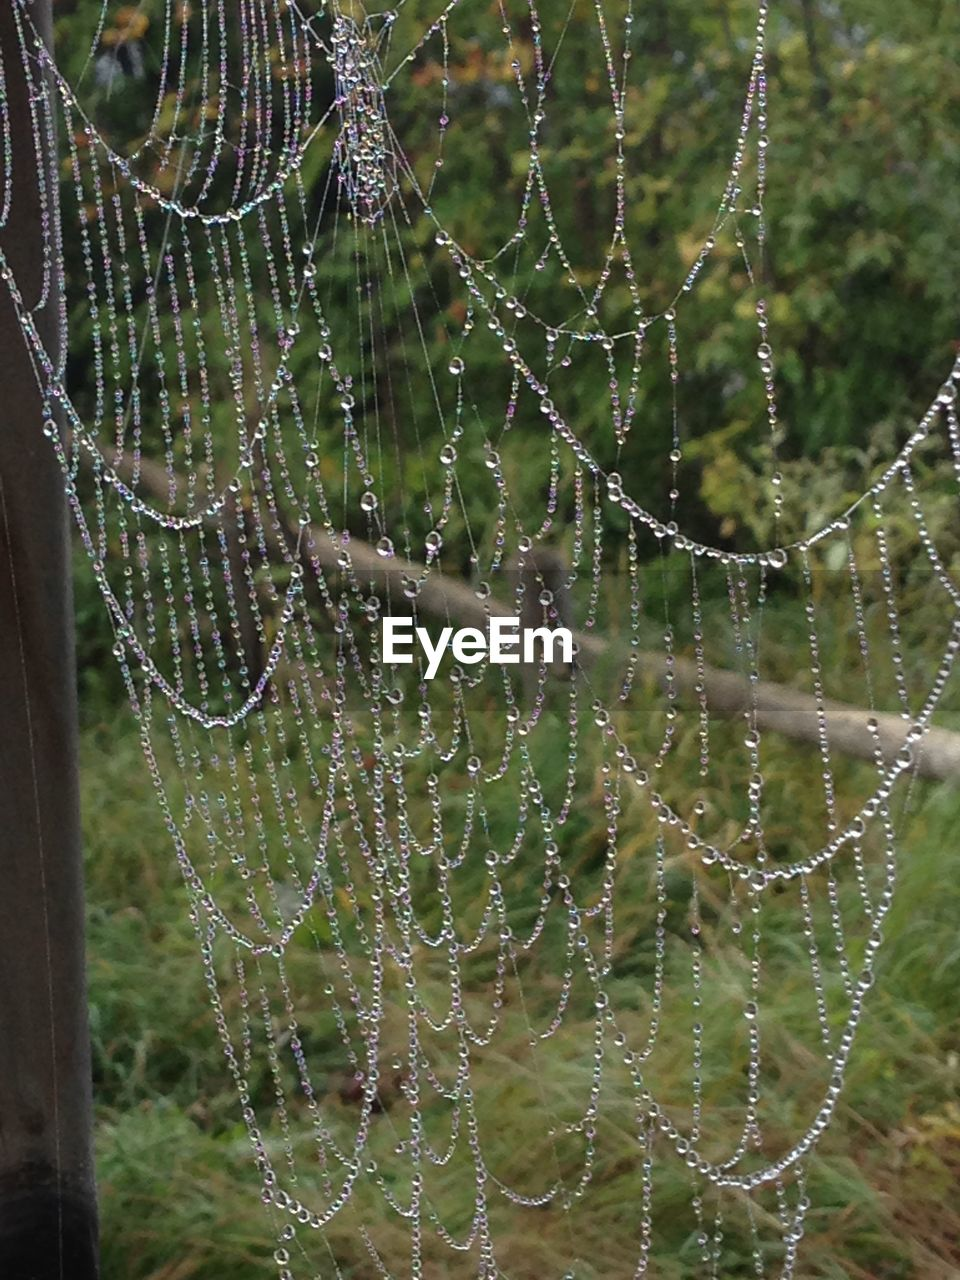 spider web, fragility, vulnerability, focus on foreground, close-up, nature, complexity, beauty in nature, no people, water, day, trapped, spider, drop, outdoors, wet, natural pattern, plant, animal, web, dew